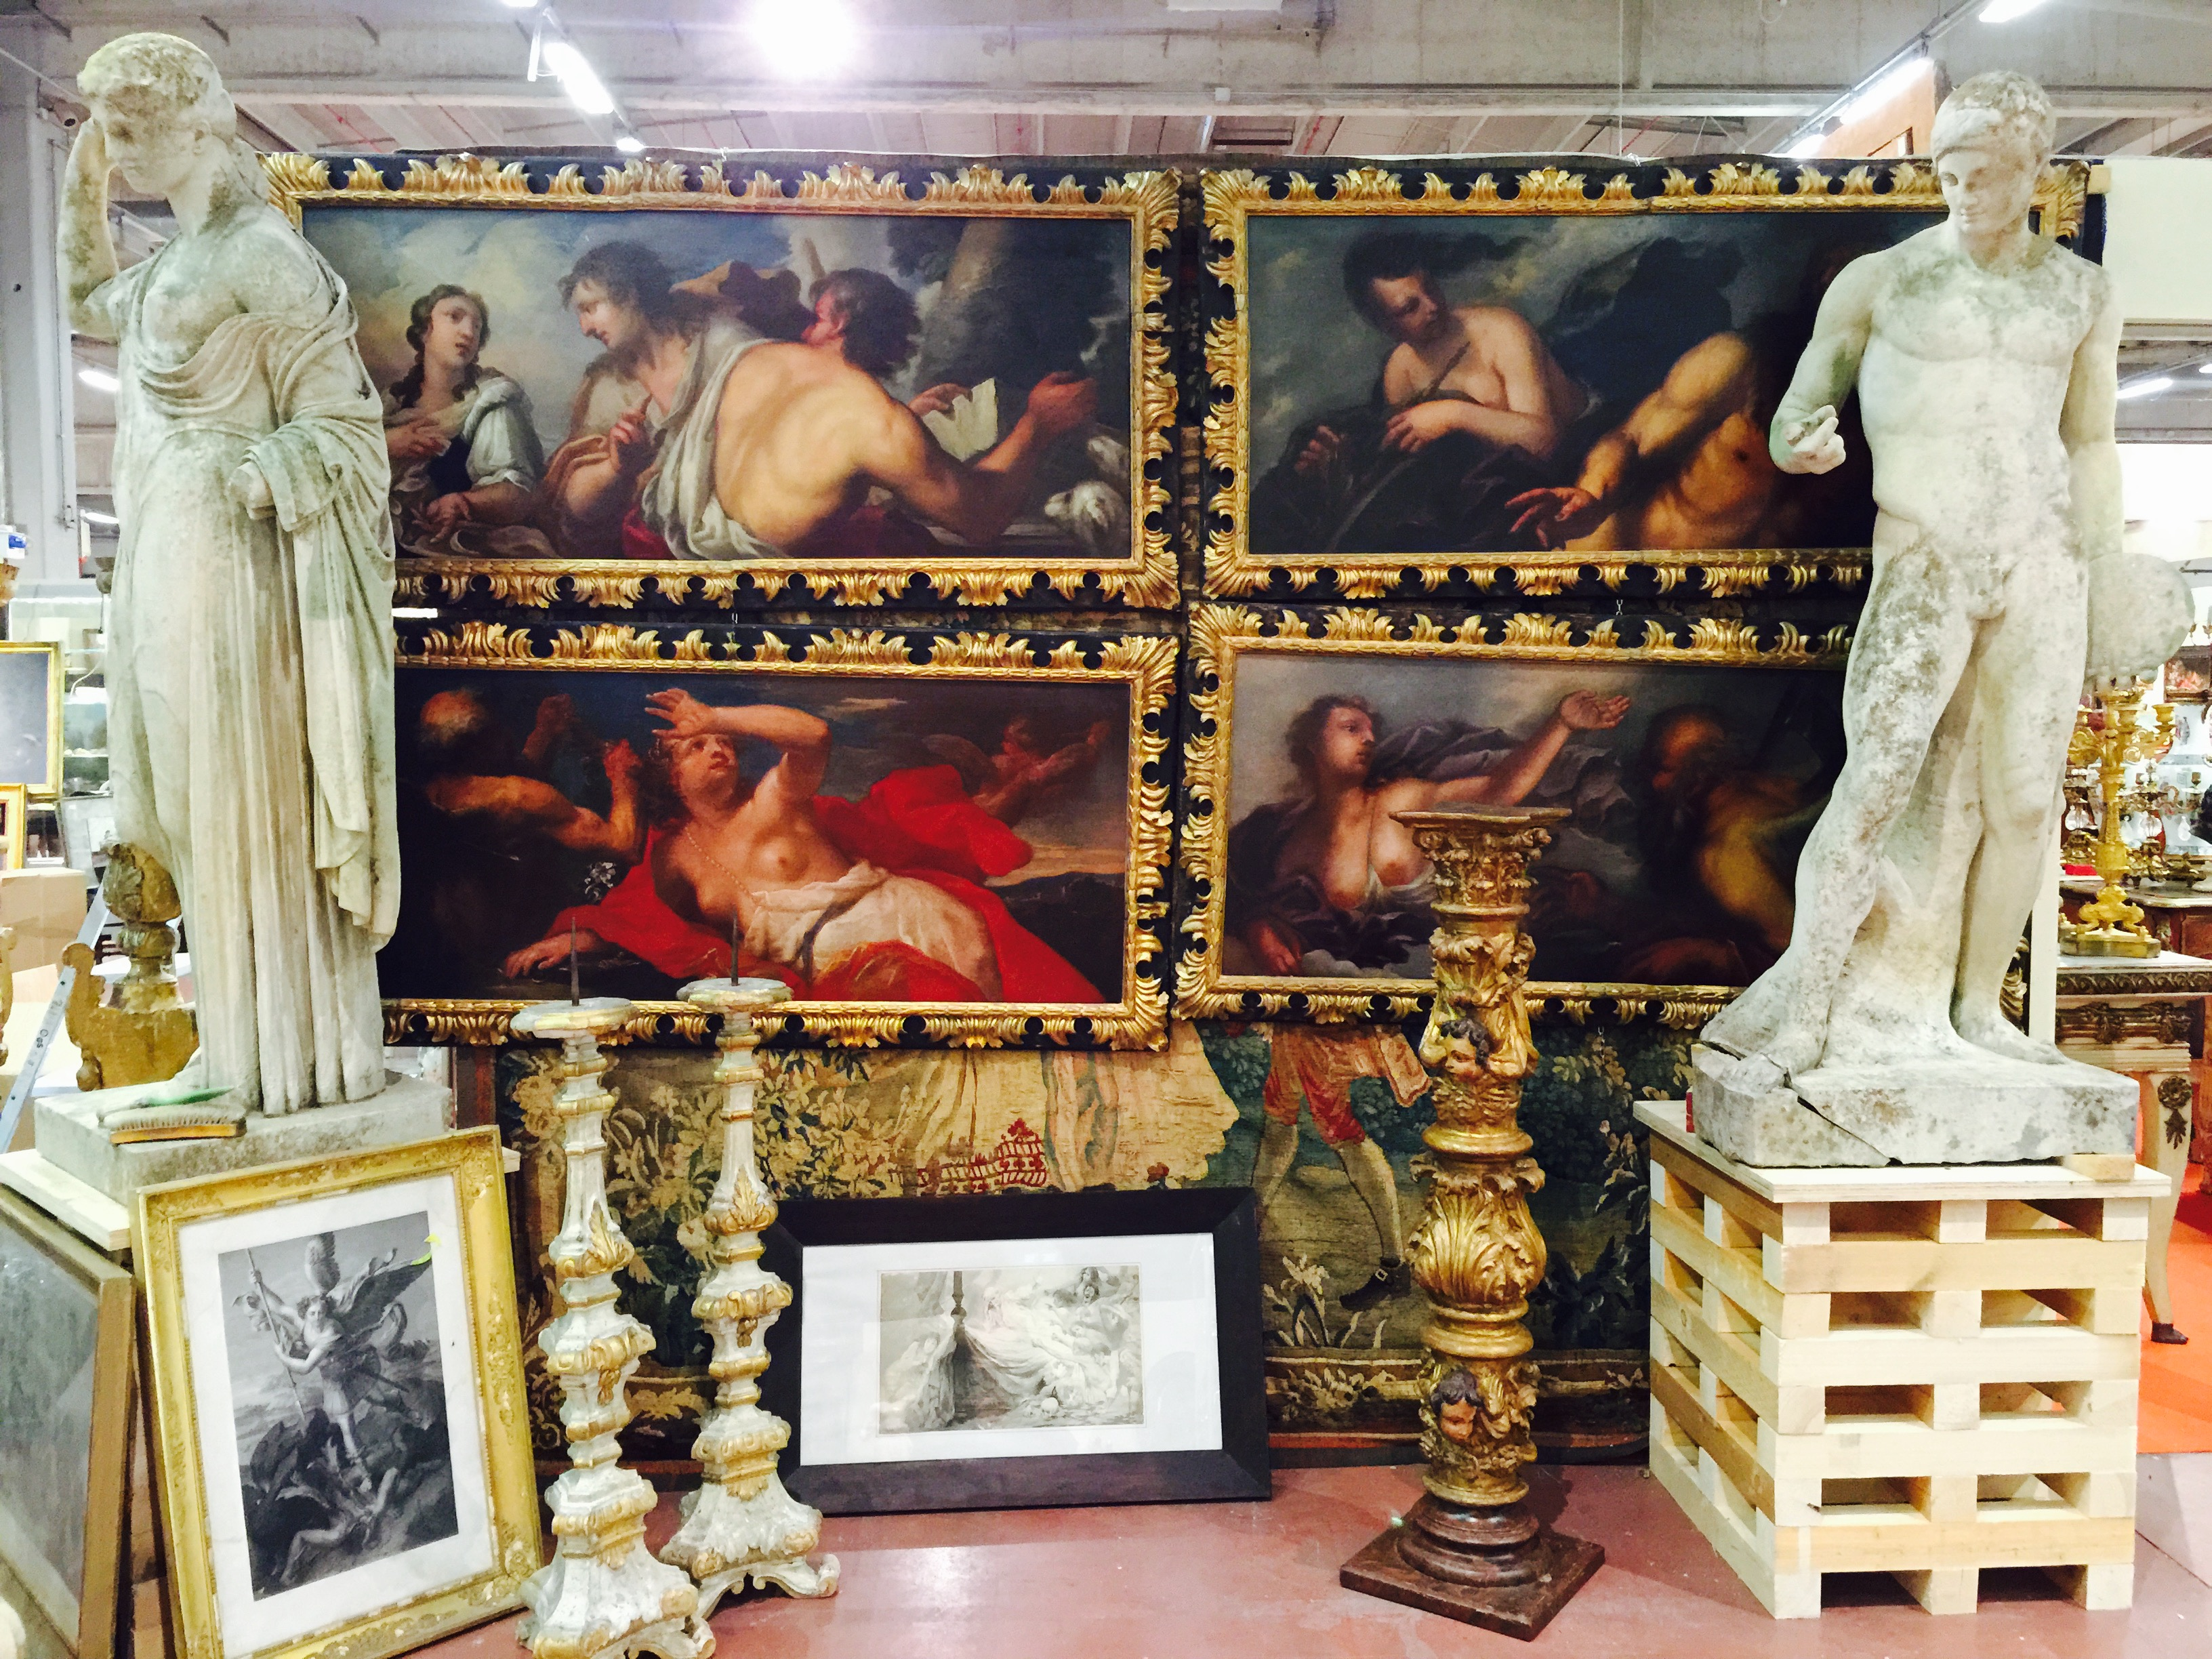 sourcing antique paintings and statuary in Italy on an Antiques Diva buying tour